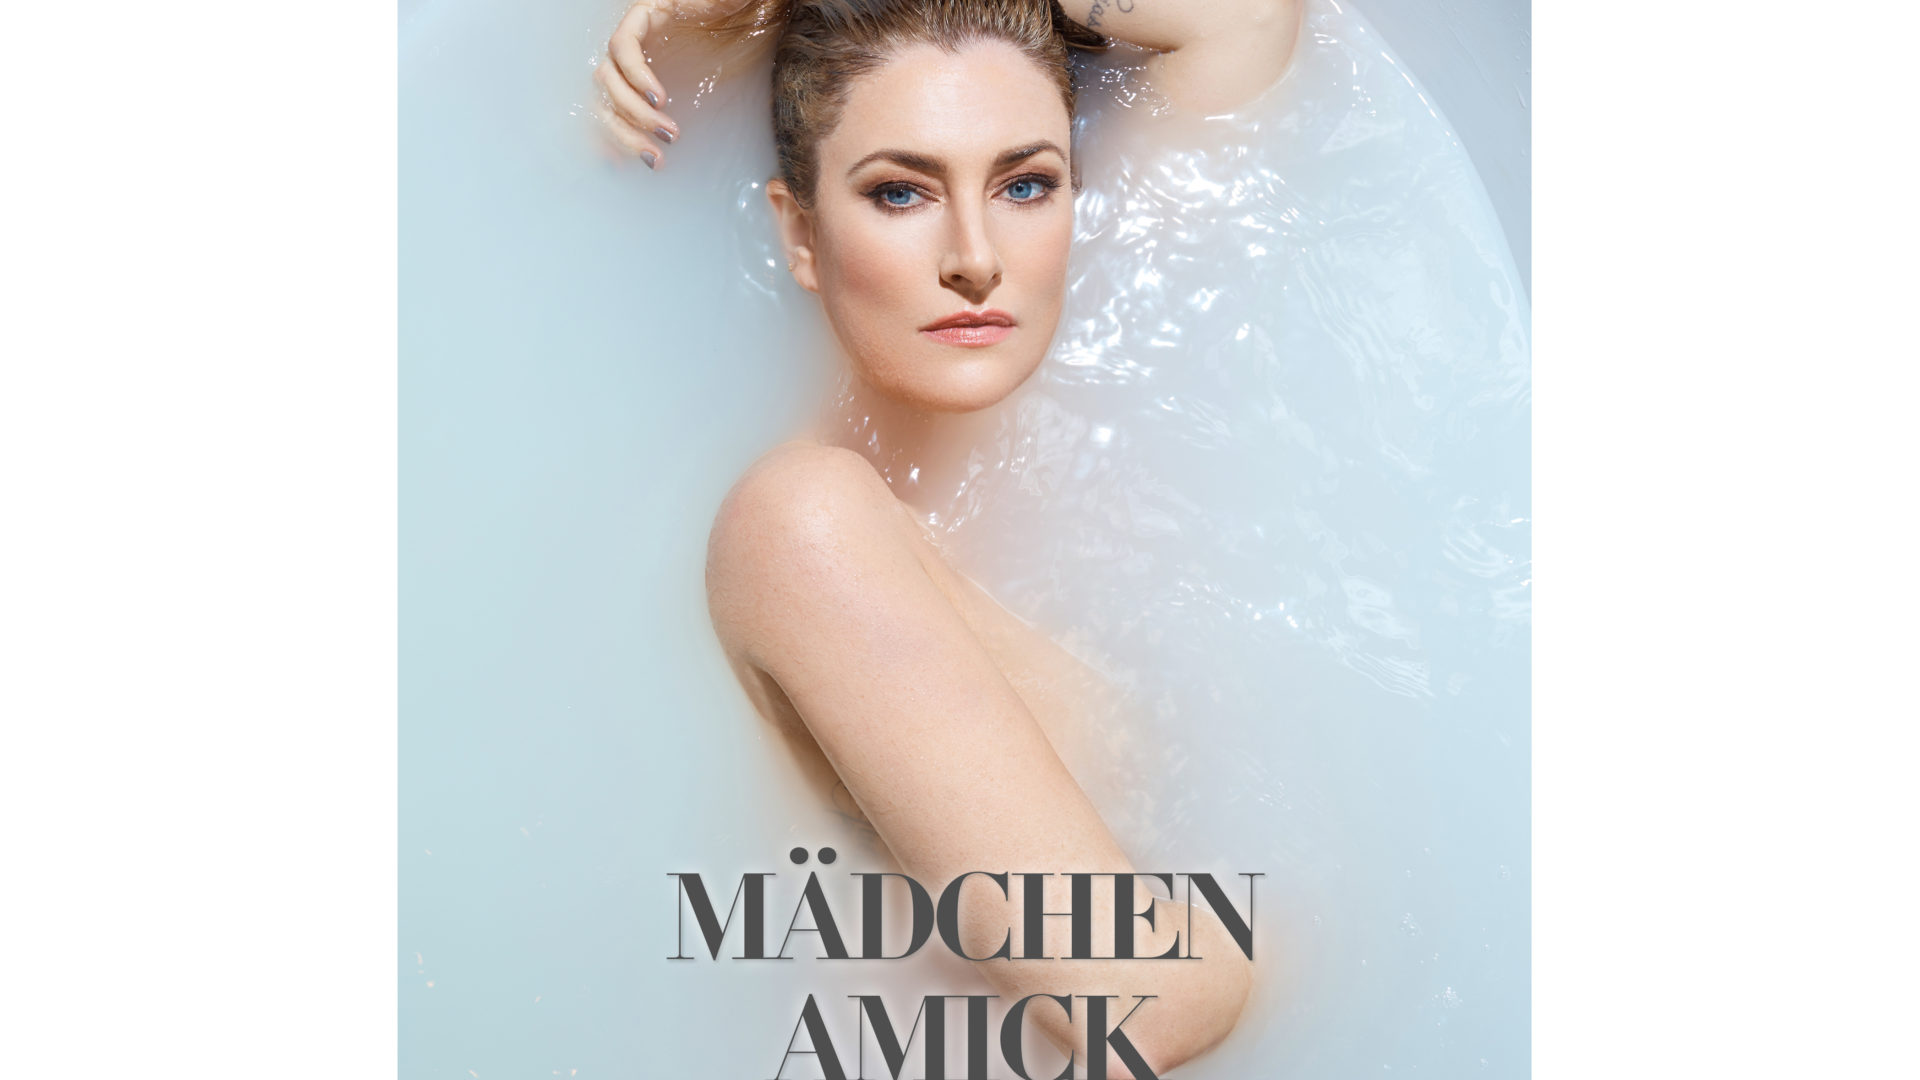 Actress Mädchen Amick, Body of Work